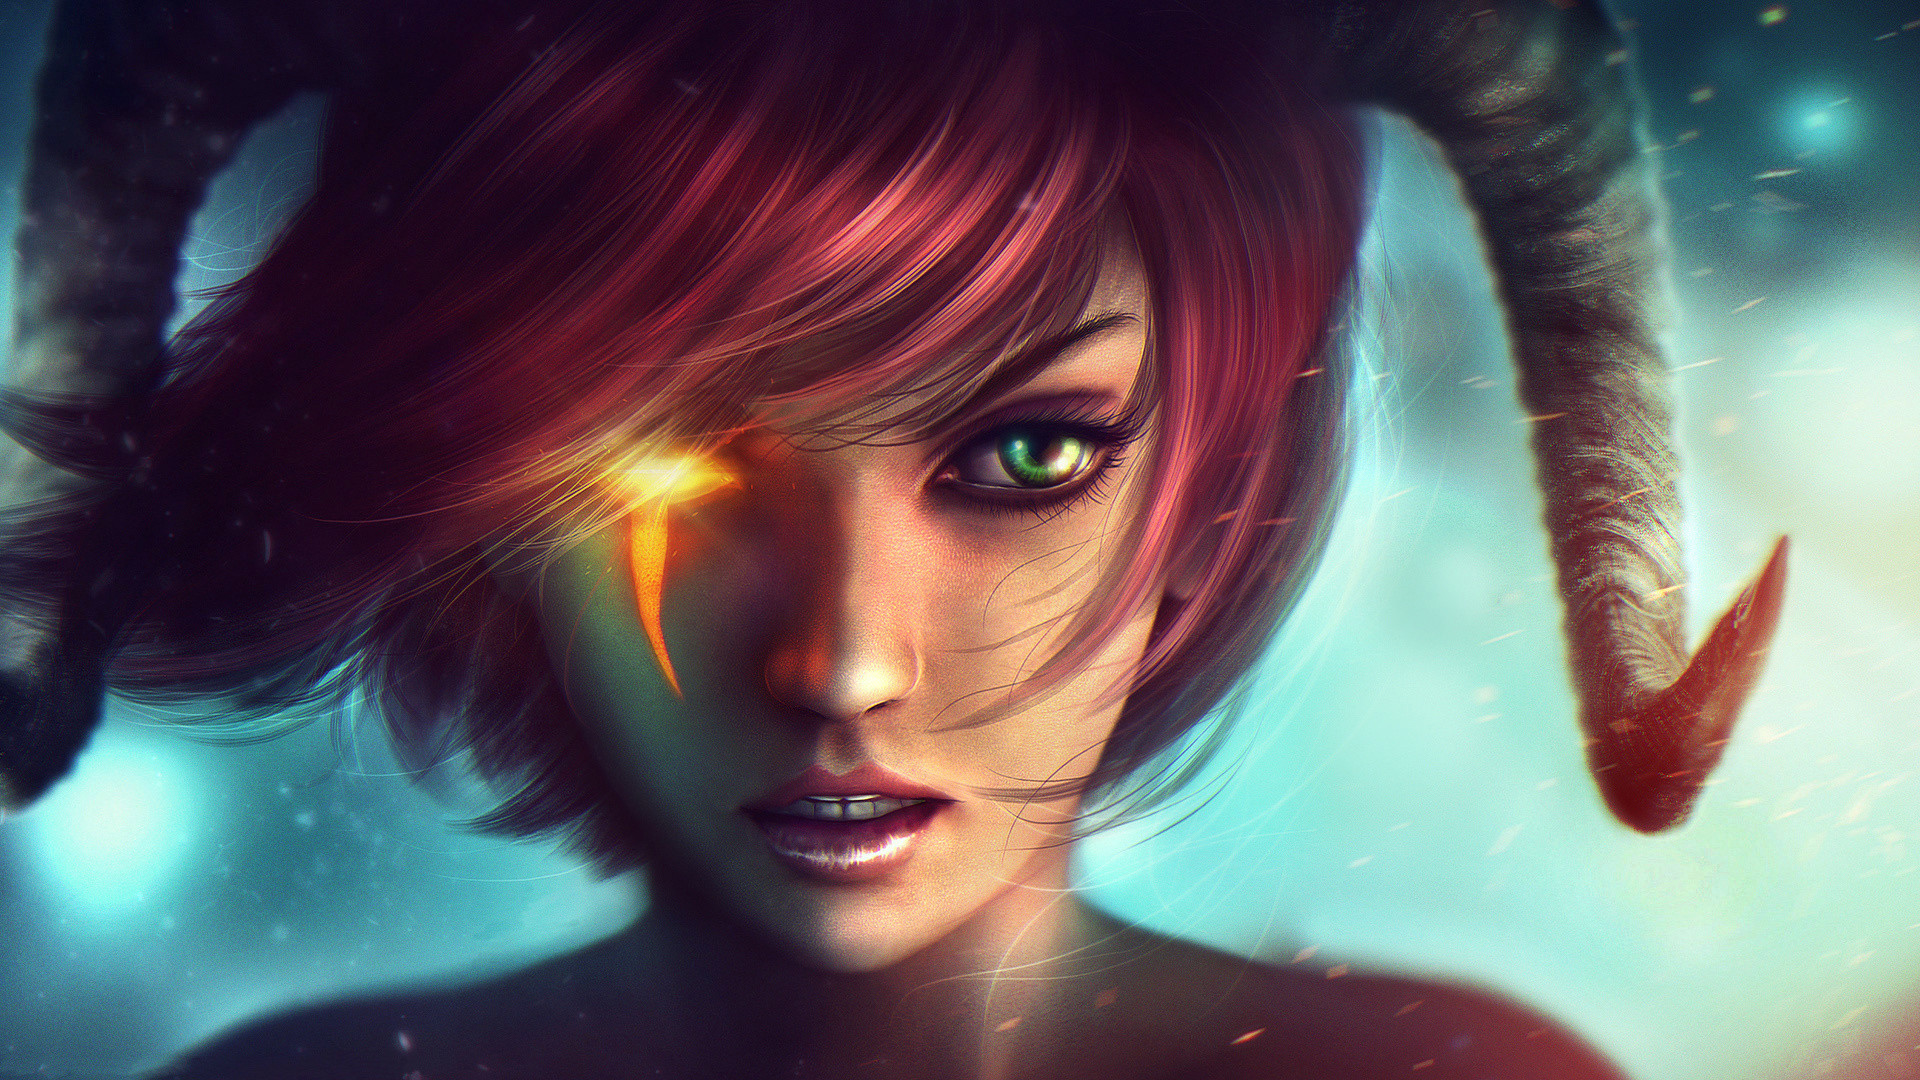 Preview wallpaper dungeons and dragons, girl, art, green eyes, horns,  fantasy